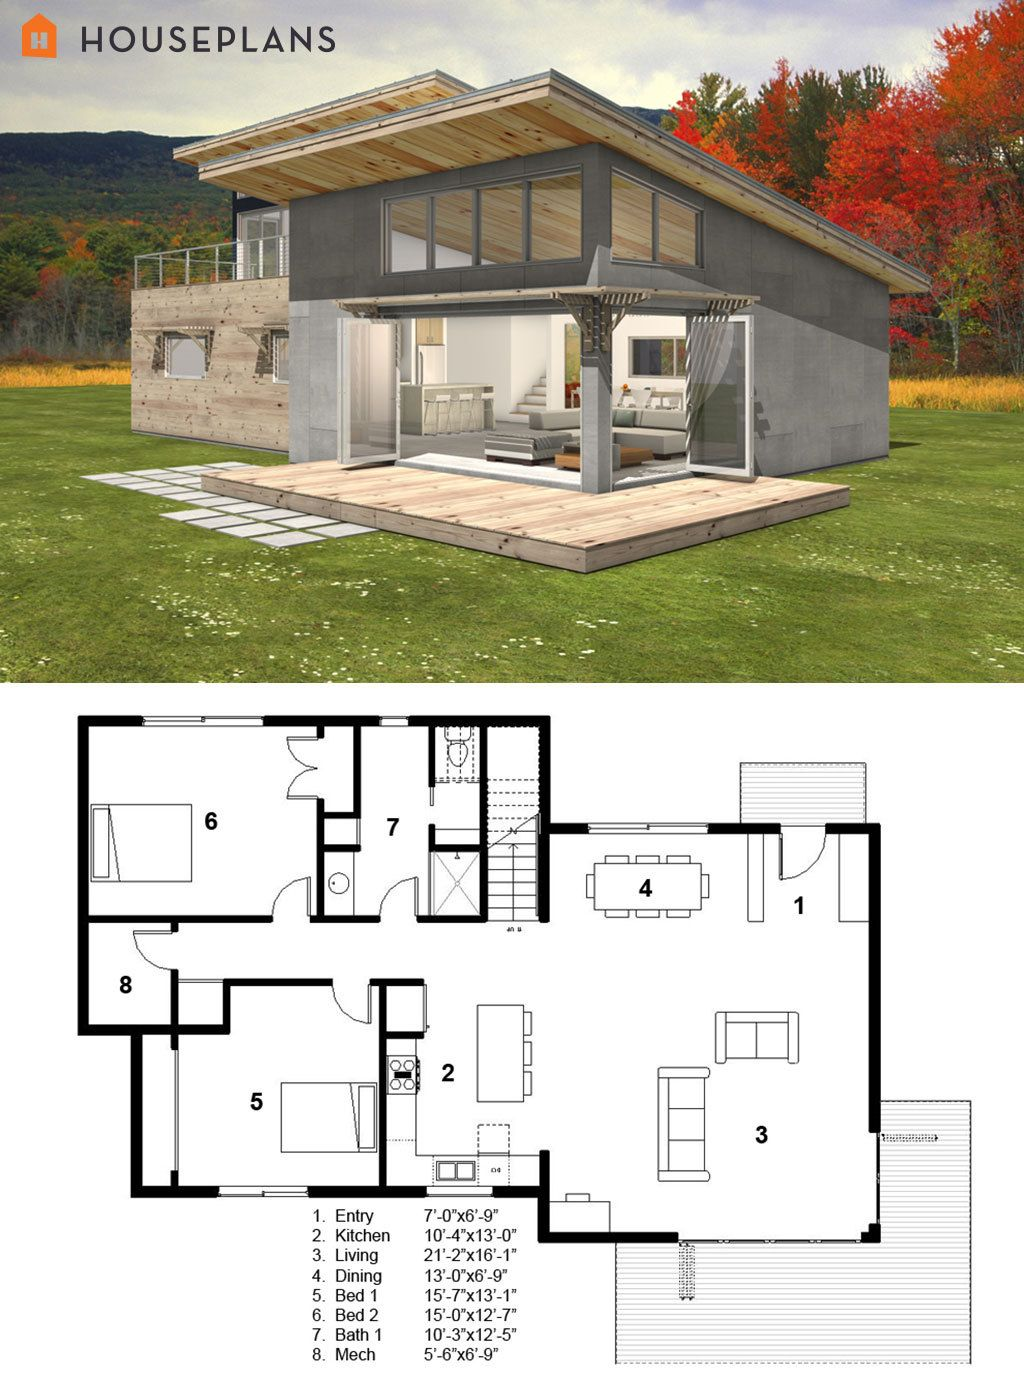 Small modern cabin house plan by freegreen energy for House plans with pictures and cost to build